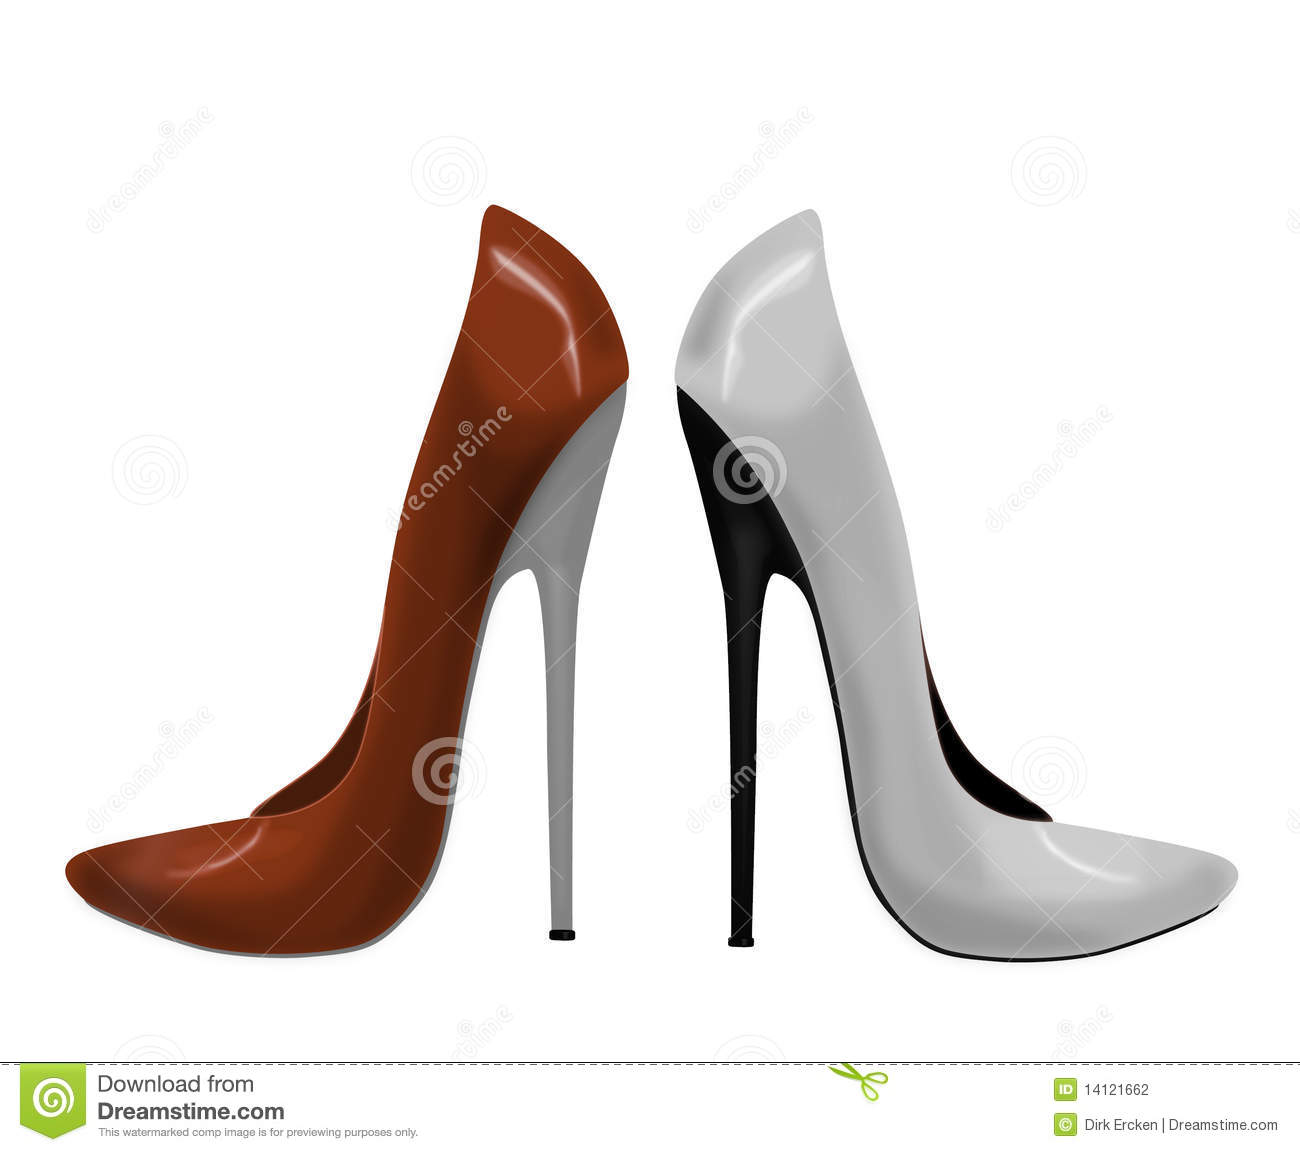 Red and white shoes for sale must have for women stiletto high heels